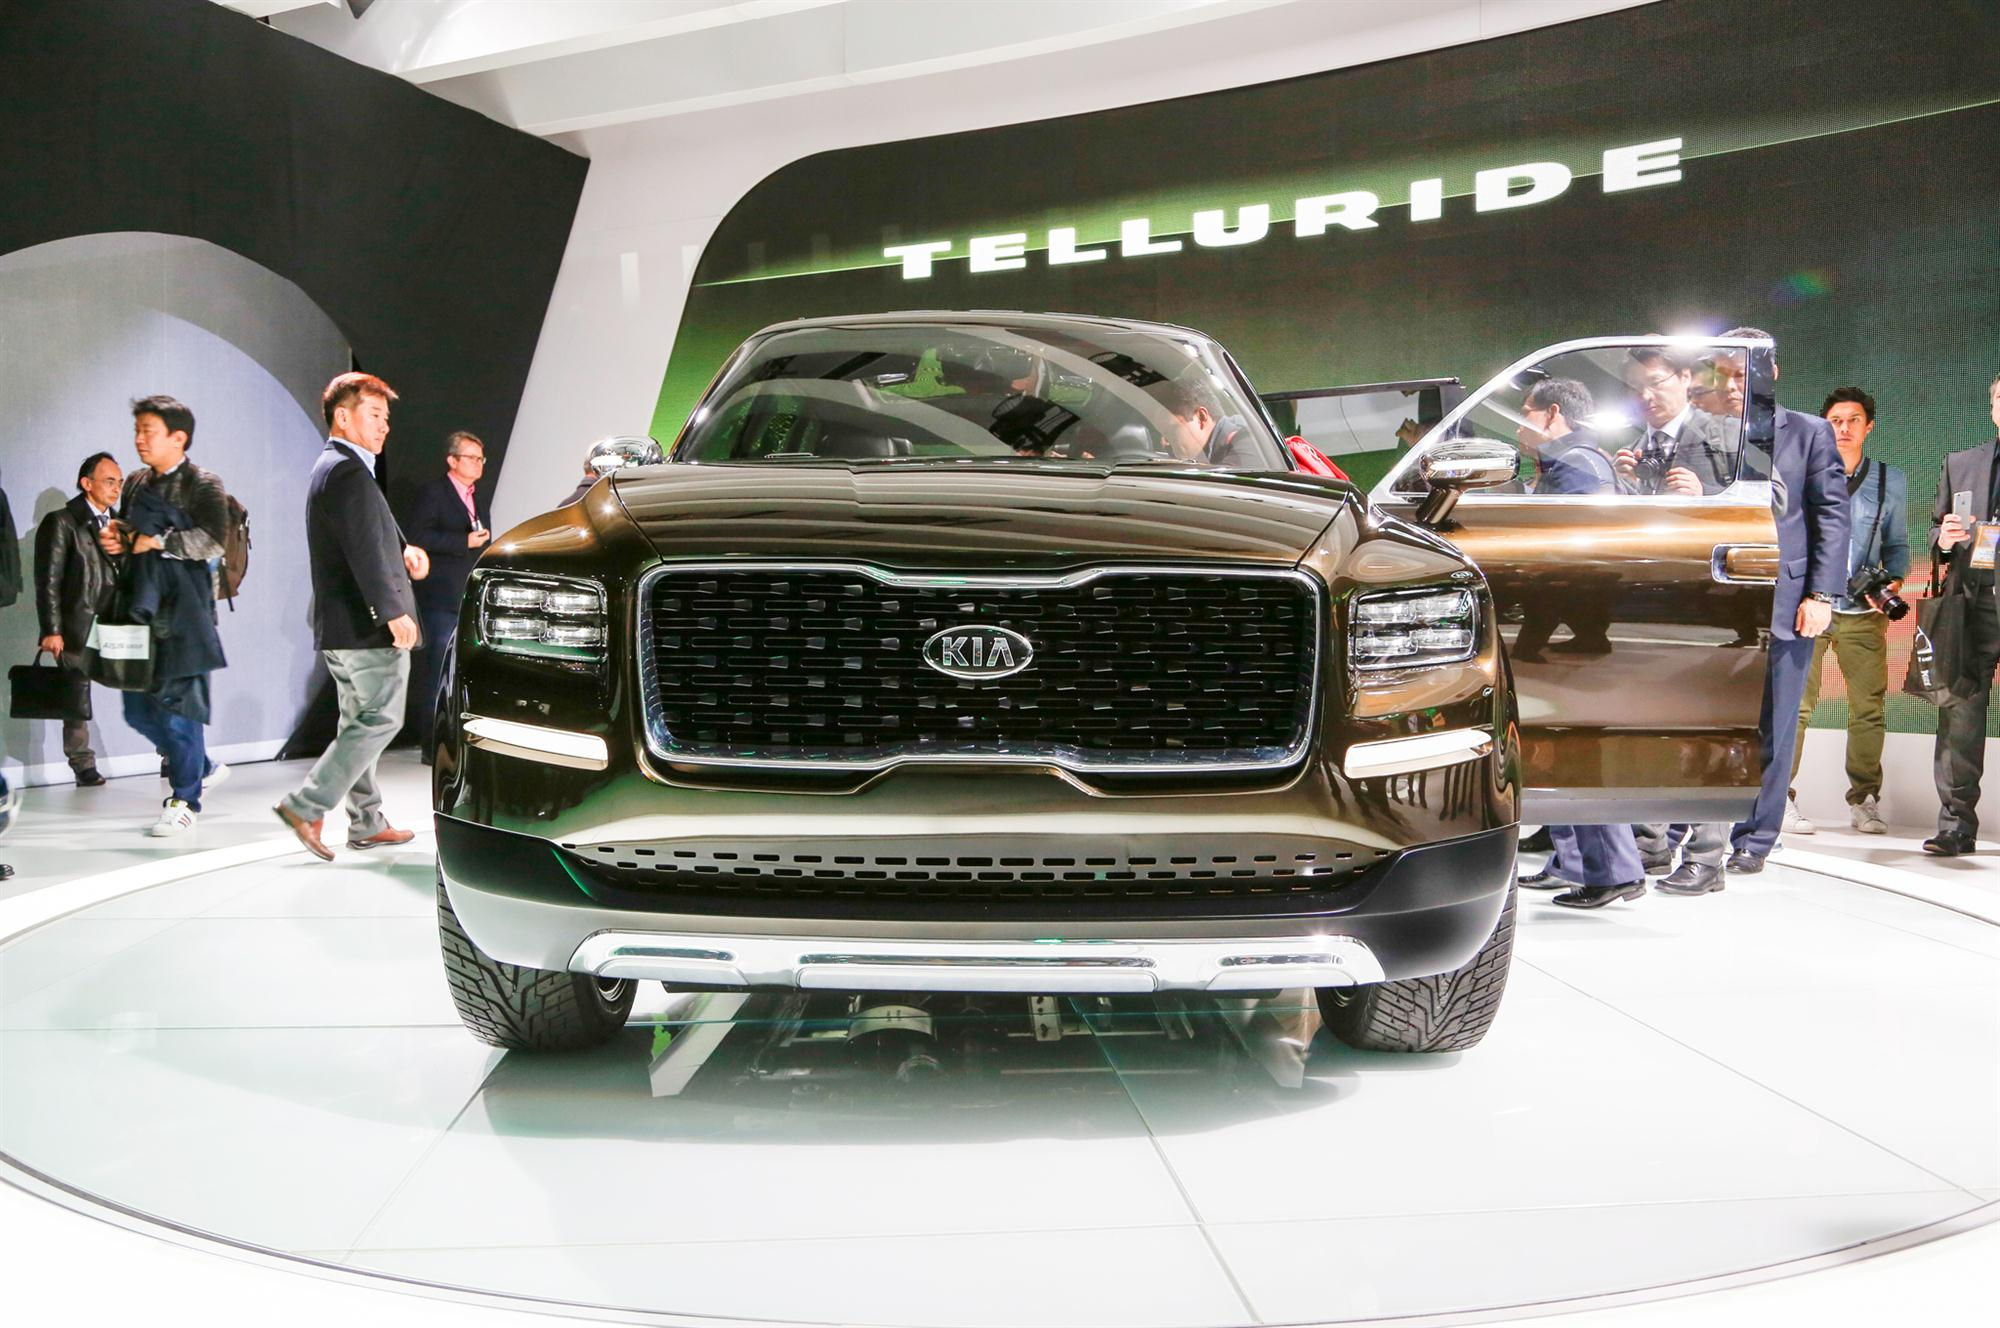 KIA Telluride - Most Affordable SUV 2020